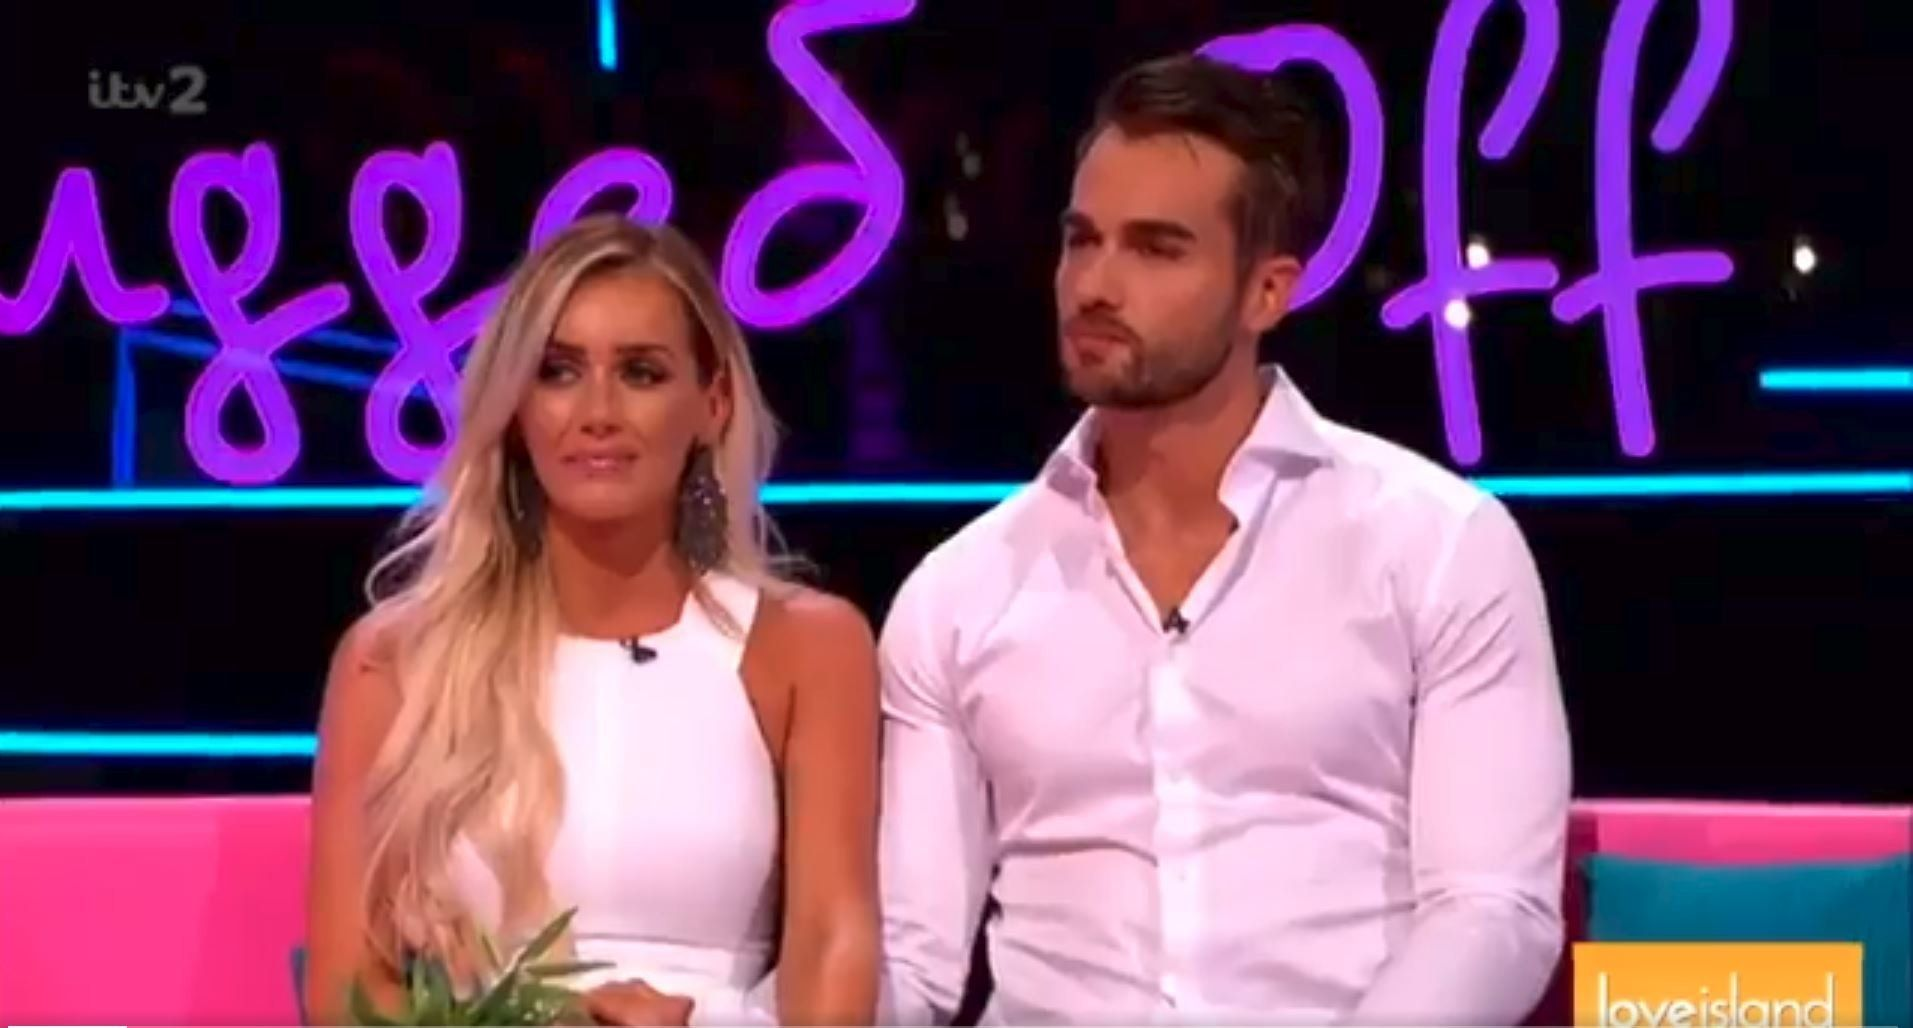 Ruth busts husband Eamonn Holmes 'cracking on' with Love Island's Laura